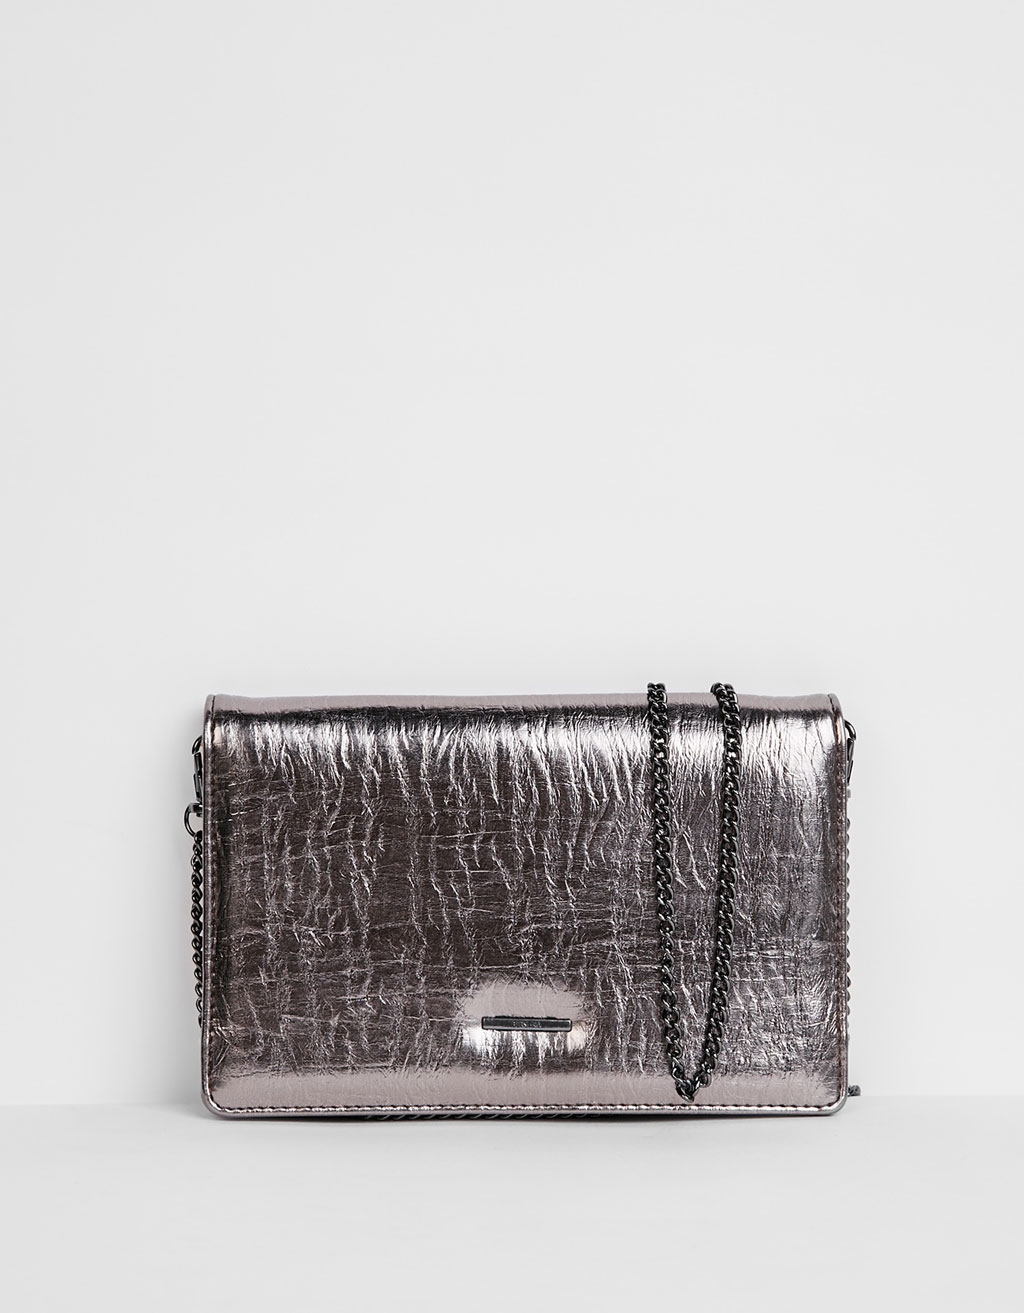 Clutch-Portemonnaie in Metallic mit Kette